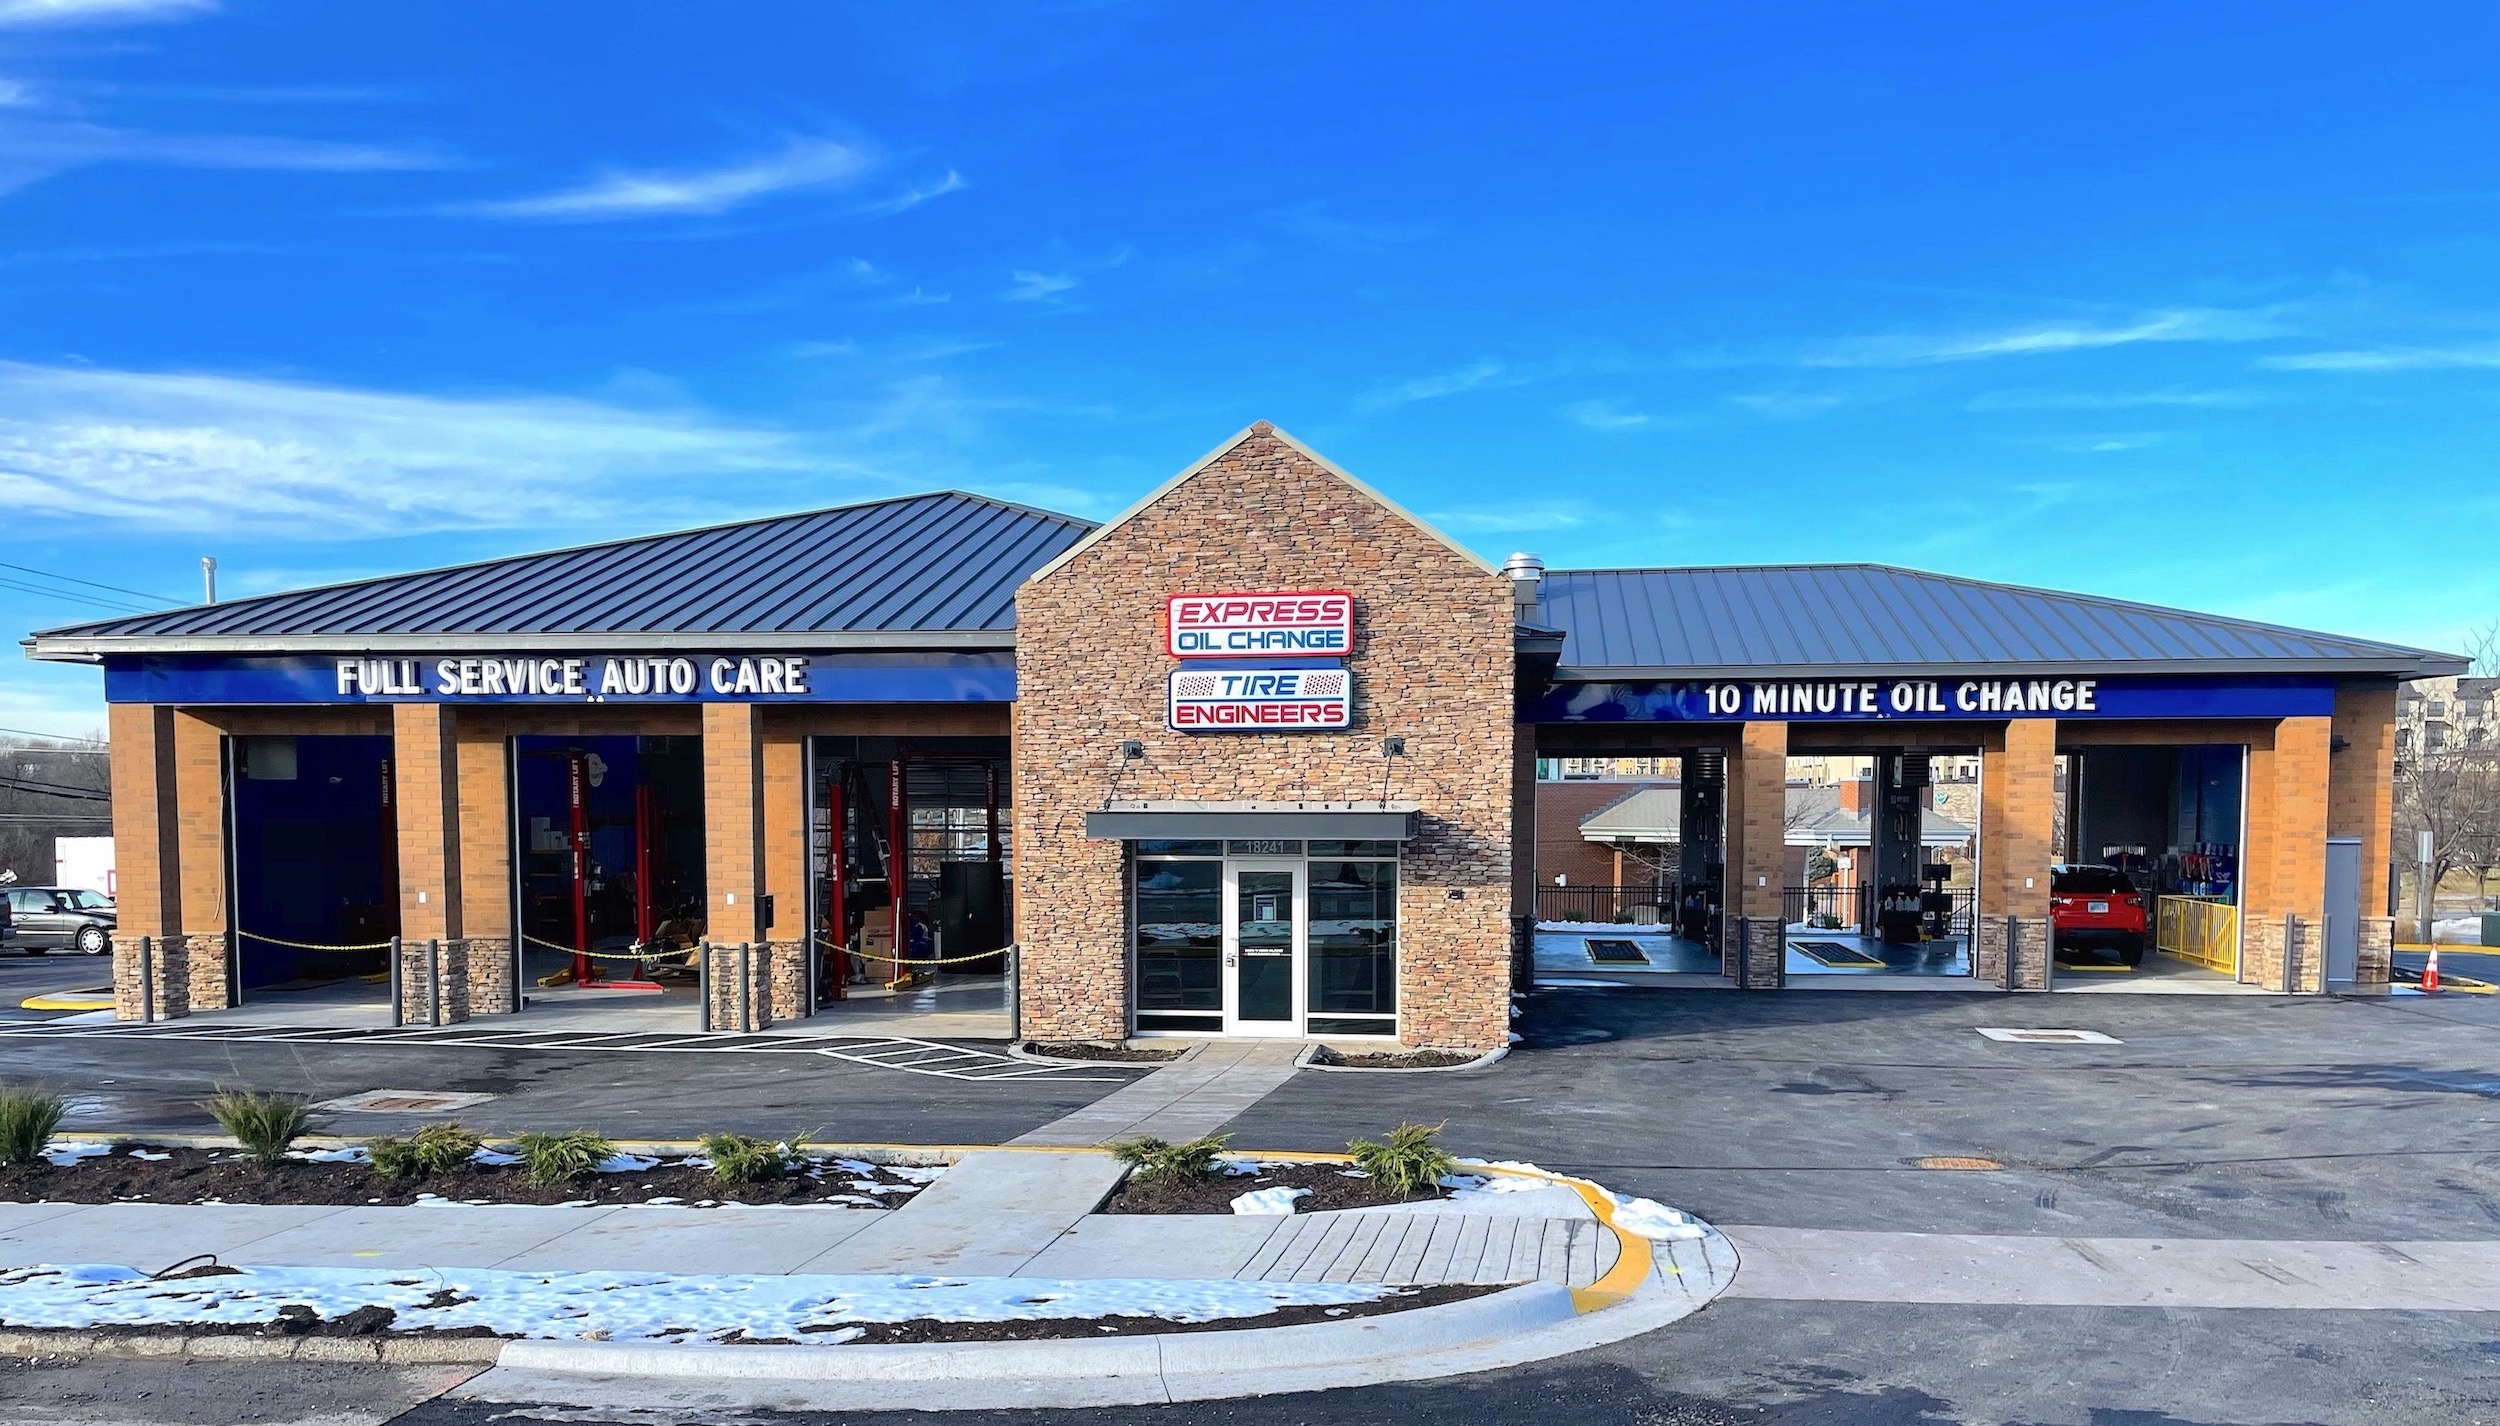 Express Oil Change & Tire Engineers at Olathe, KS - Ridgeview store